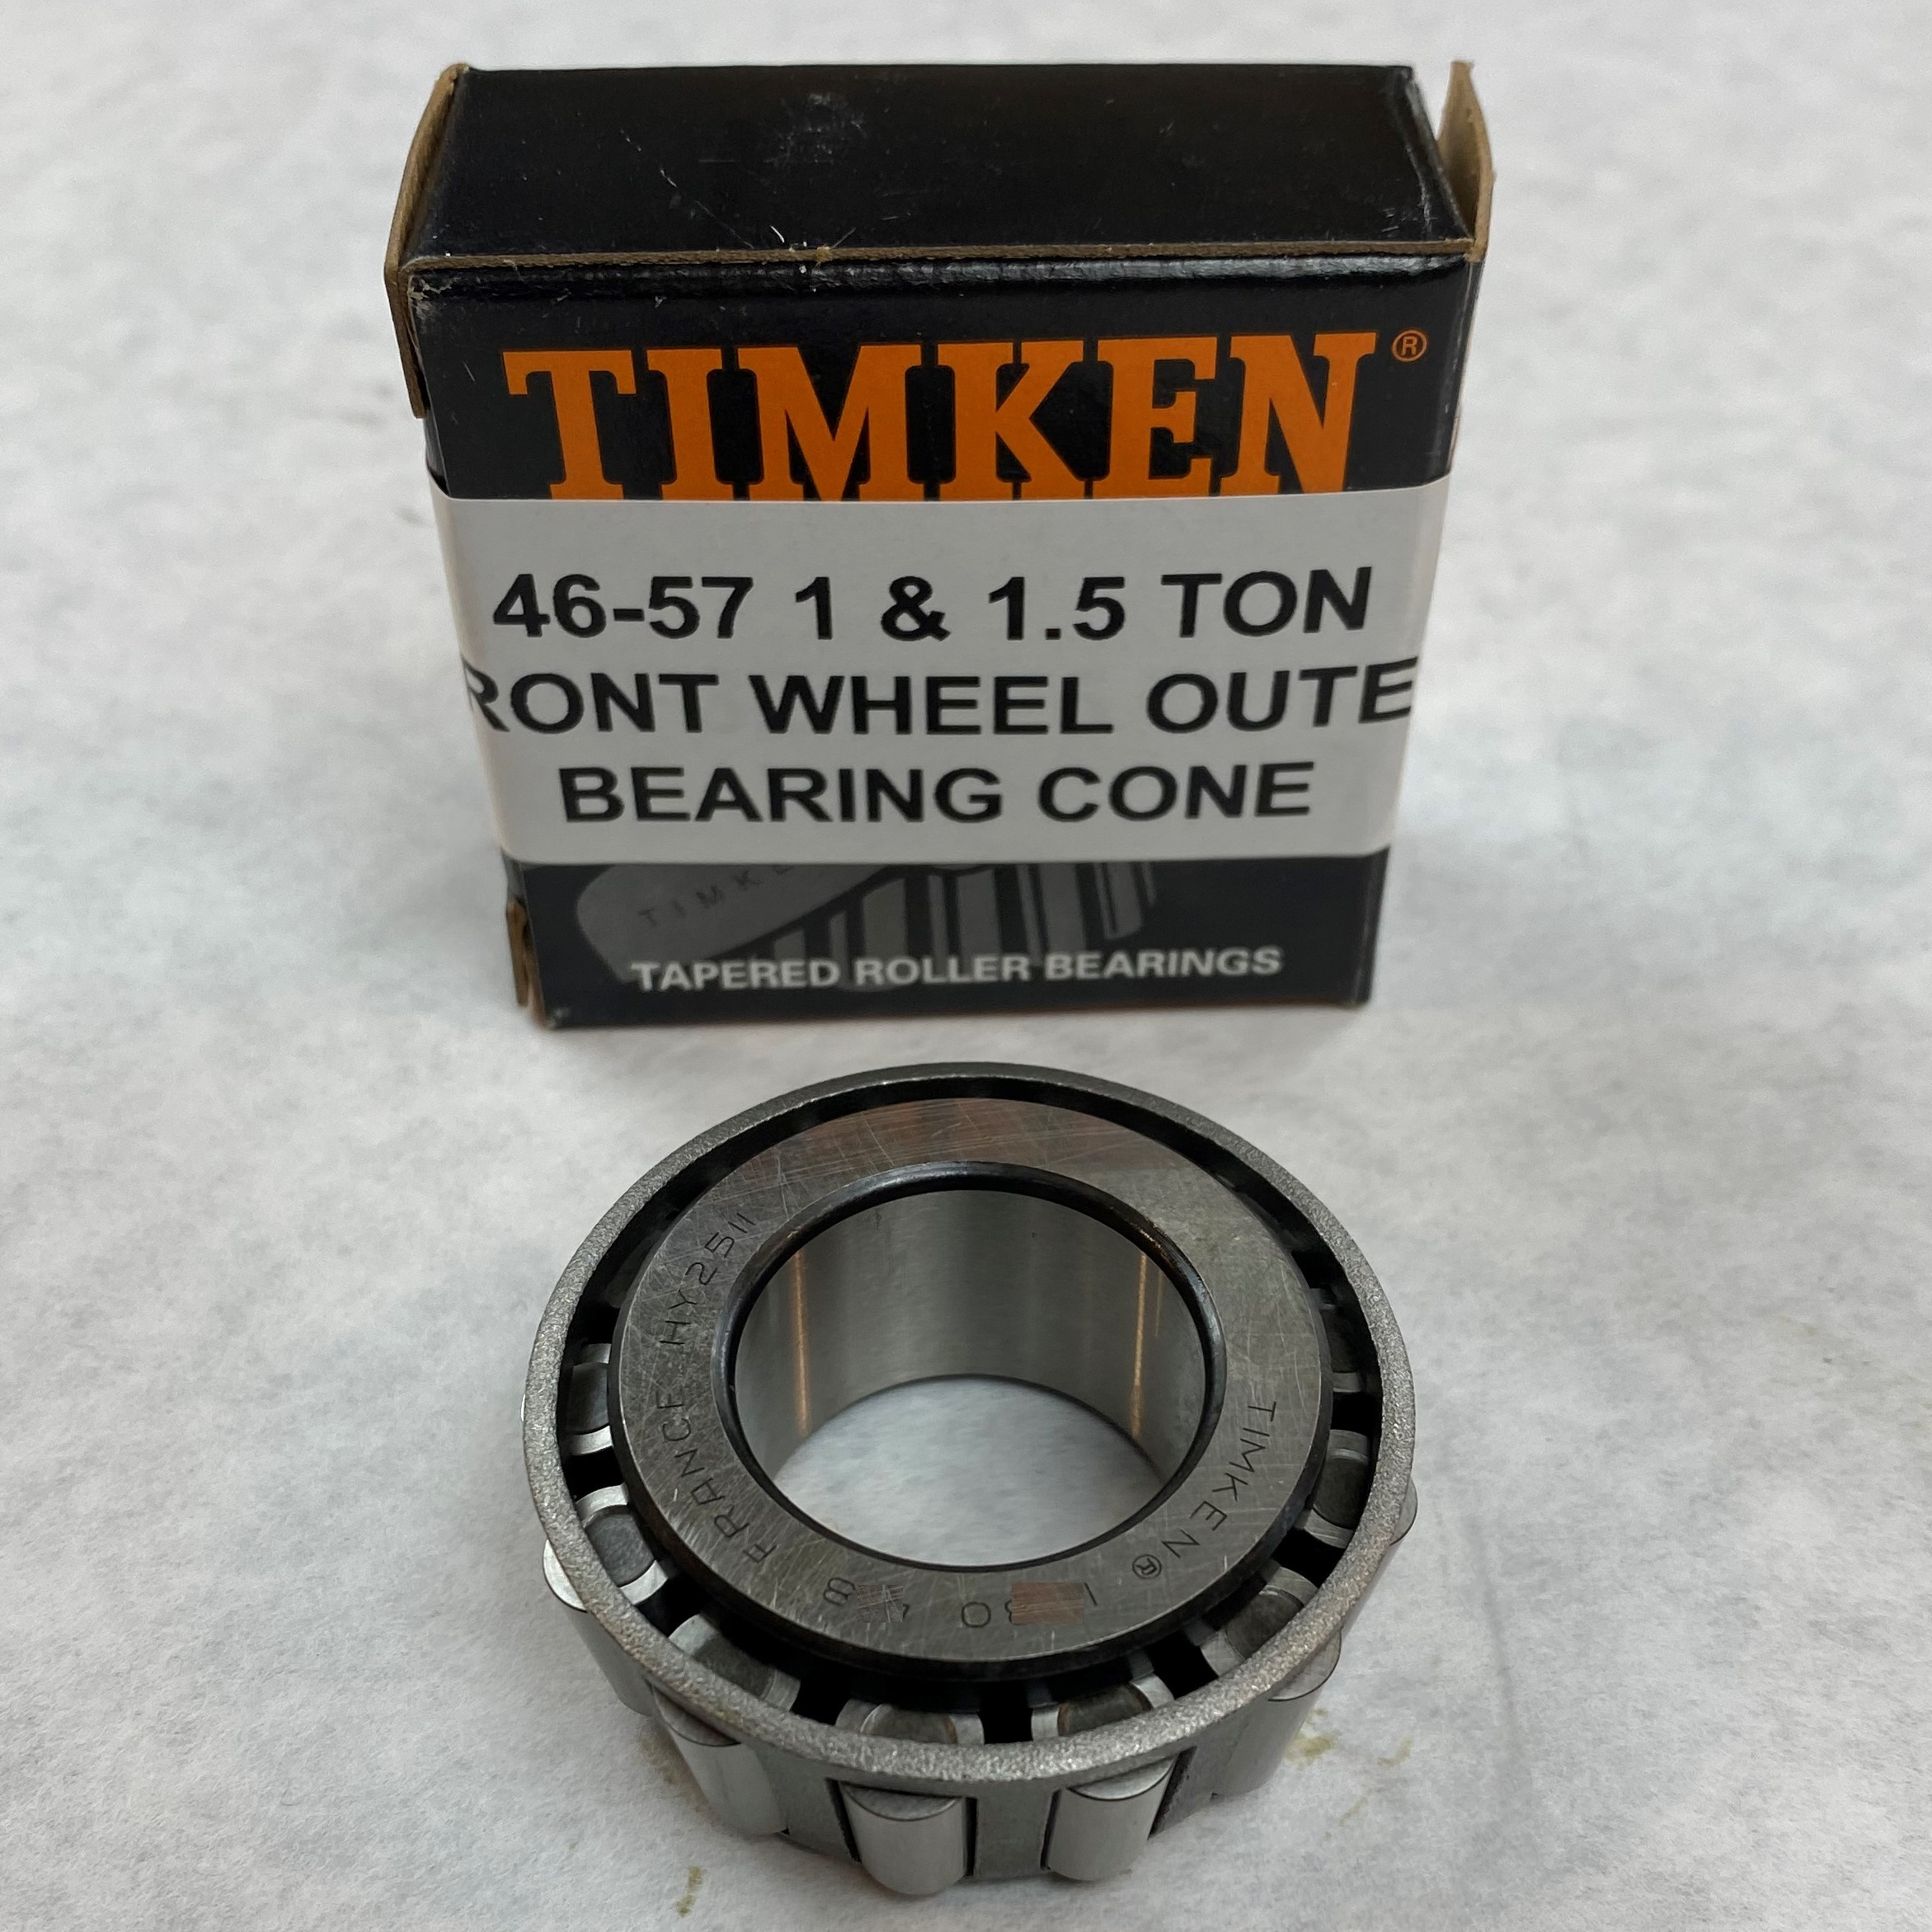 46-57 1 & 1.5 Ton Front Wheel Outer Bearing Cone – Timken